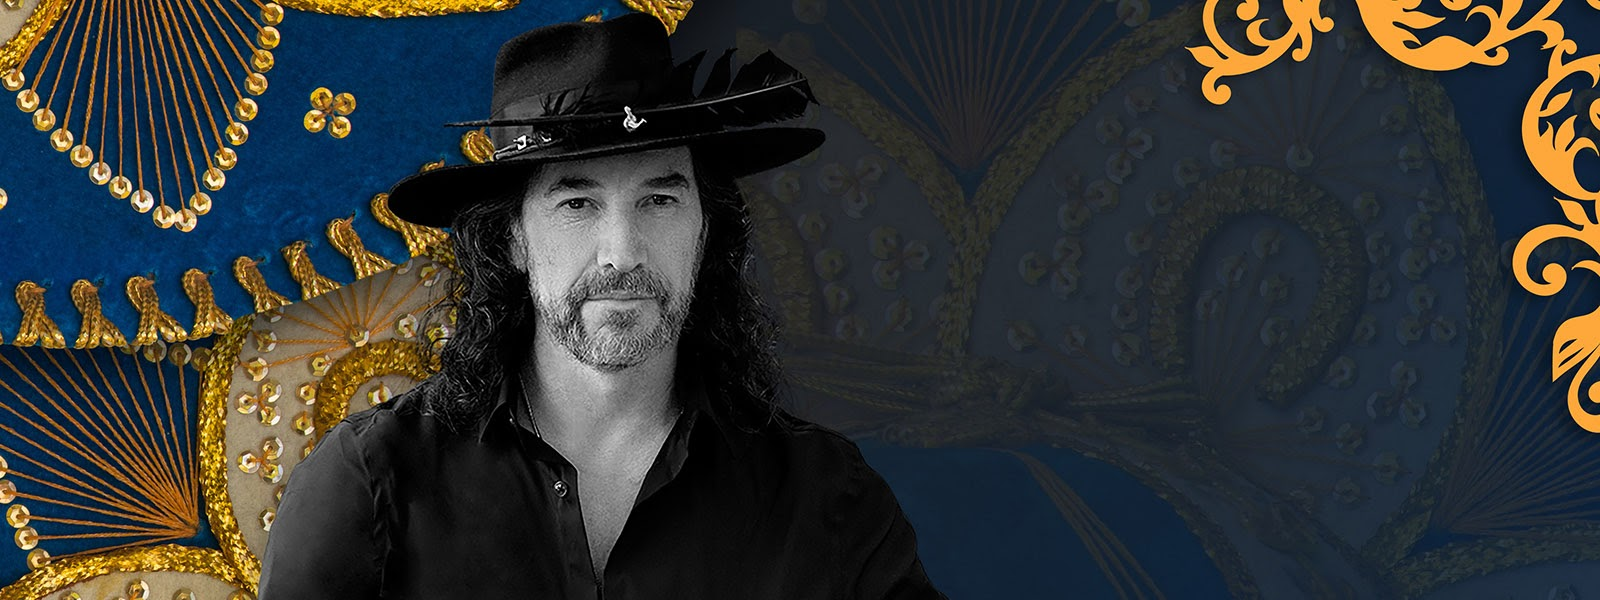 """Marco Antonio Solís Releases Brand New Single """"Se Veía Venir"""" With The Orchard"""